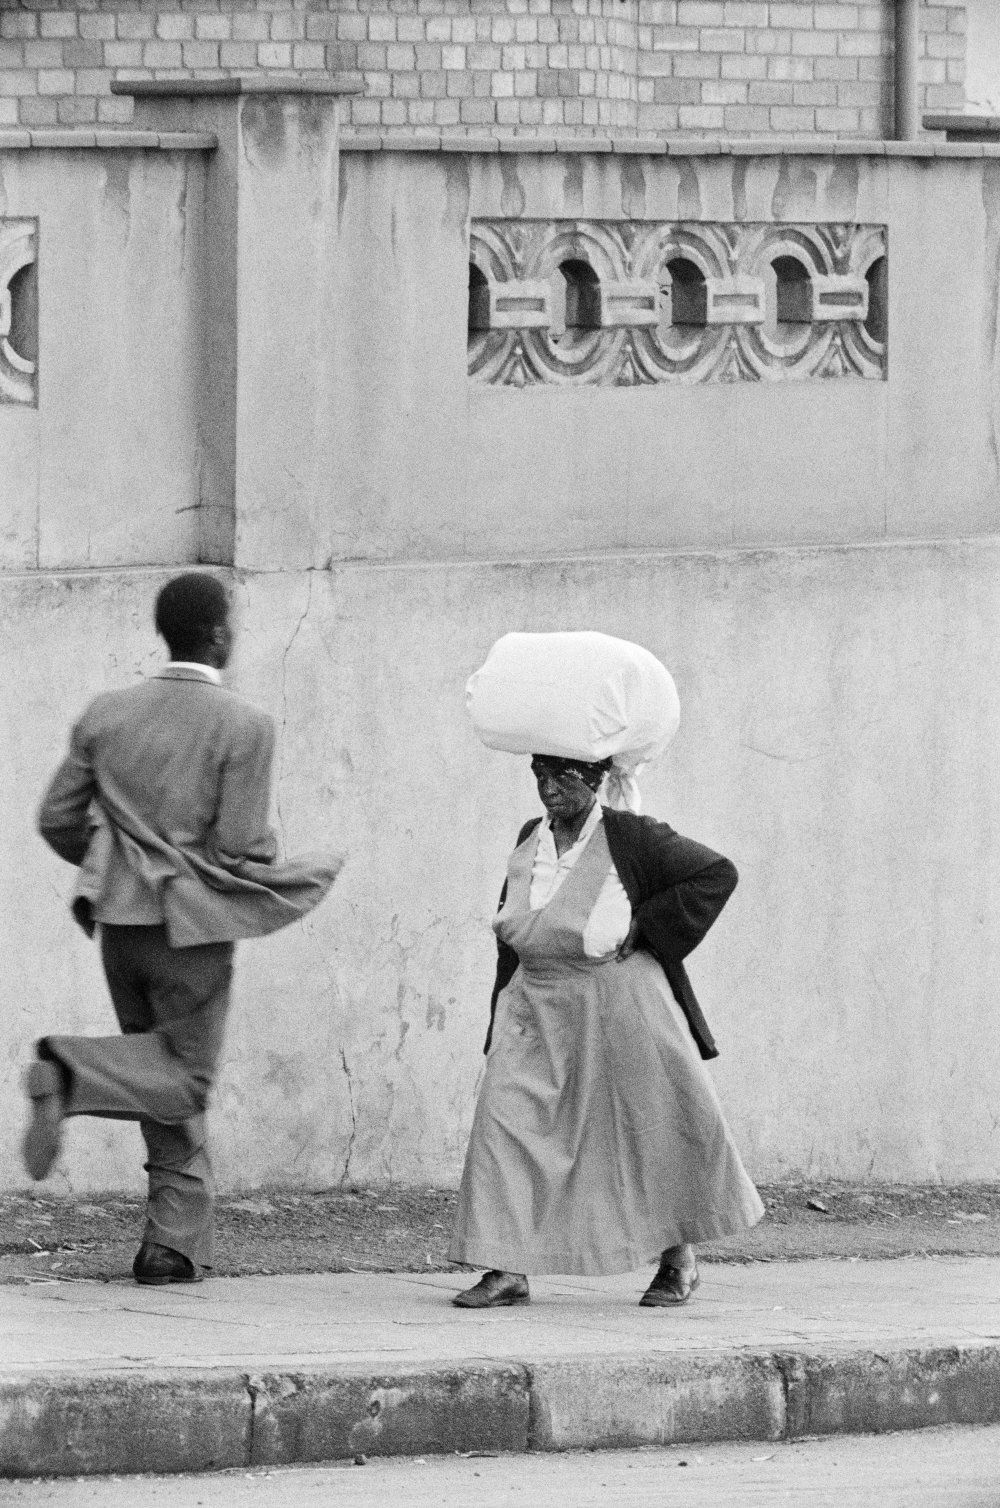 Anna Lebako, a washerwoman from Soweto carrying the week's laundry to a white suburban family, Harrow Road, 1961